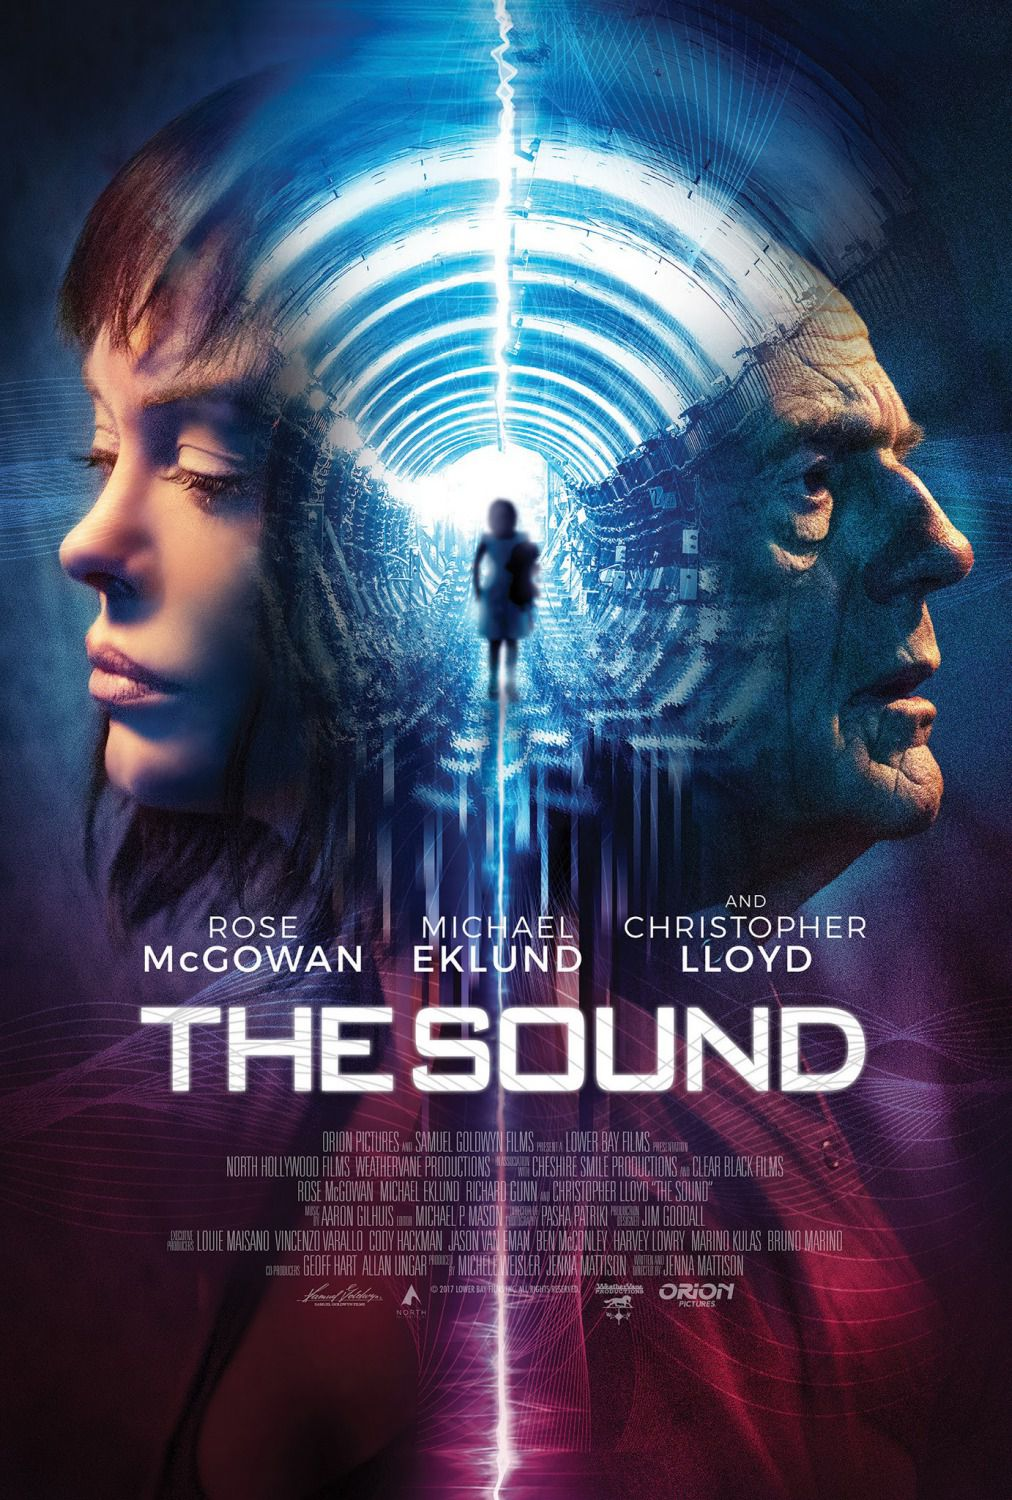 The Sound - film poster - Rose McGowan - Christopher Lloyd - Michael Eklund - Richard Gunn - film poster